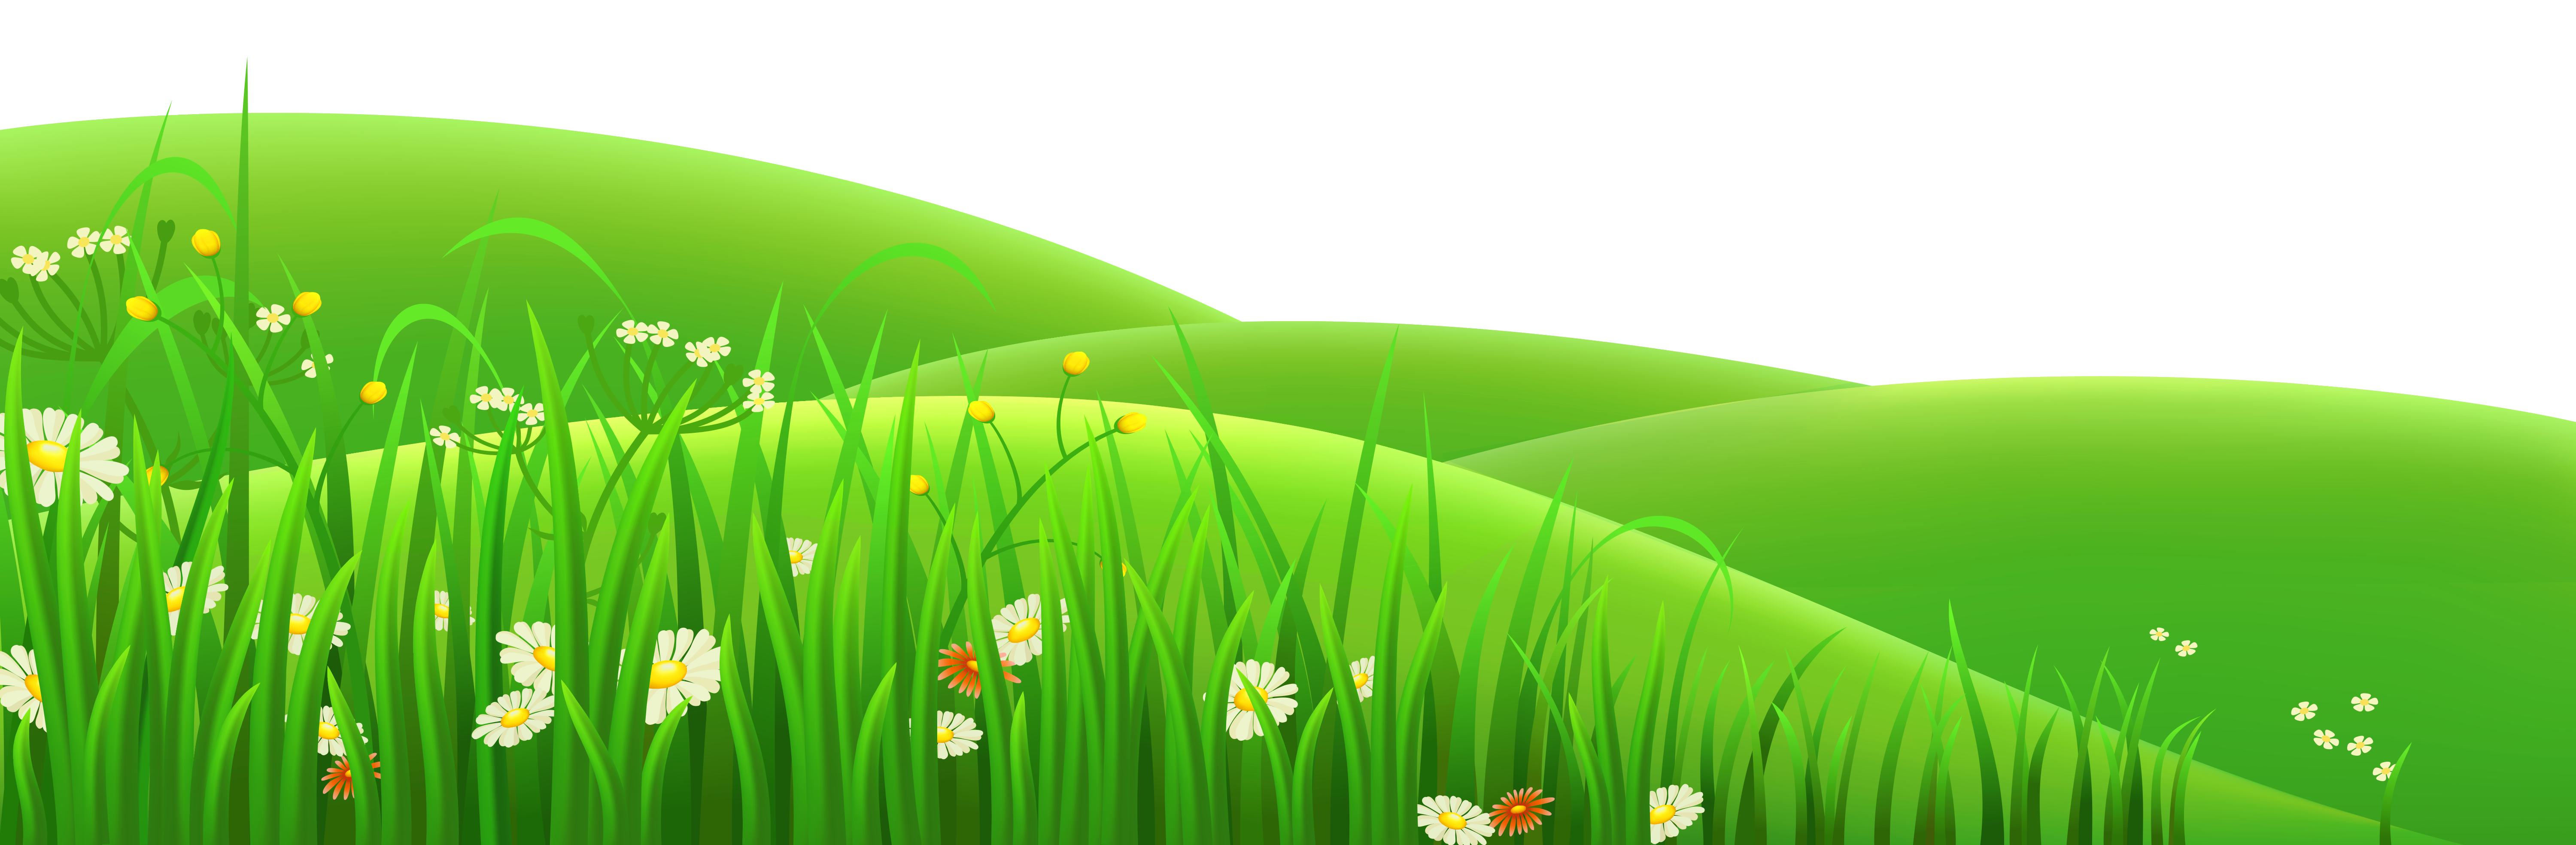 Grass clipart #6, Download drawings